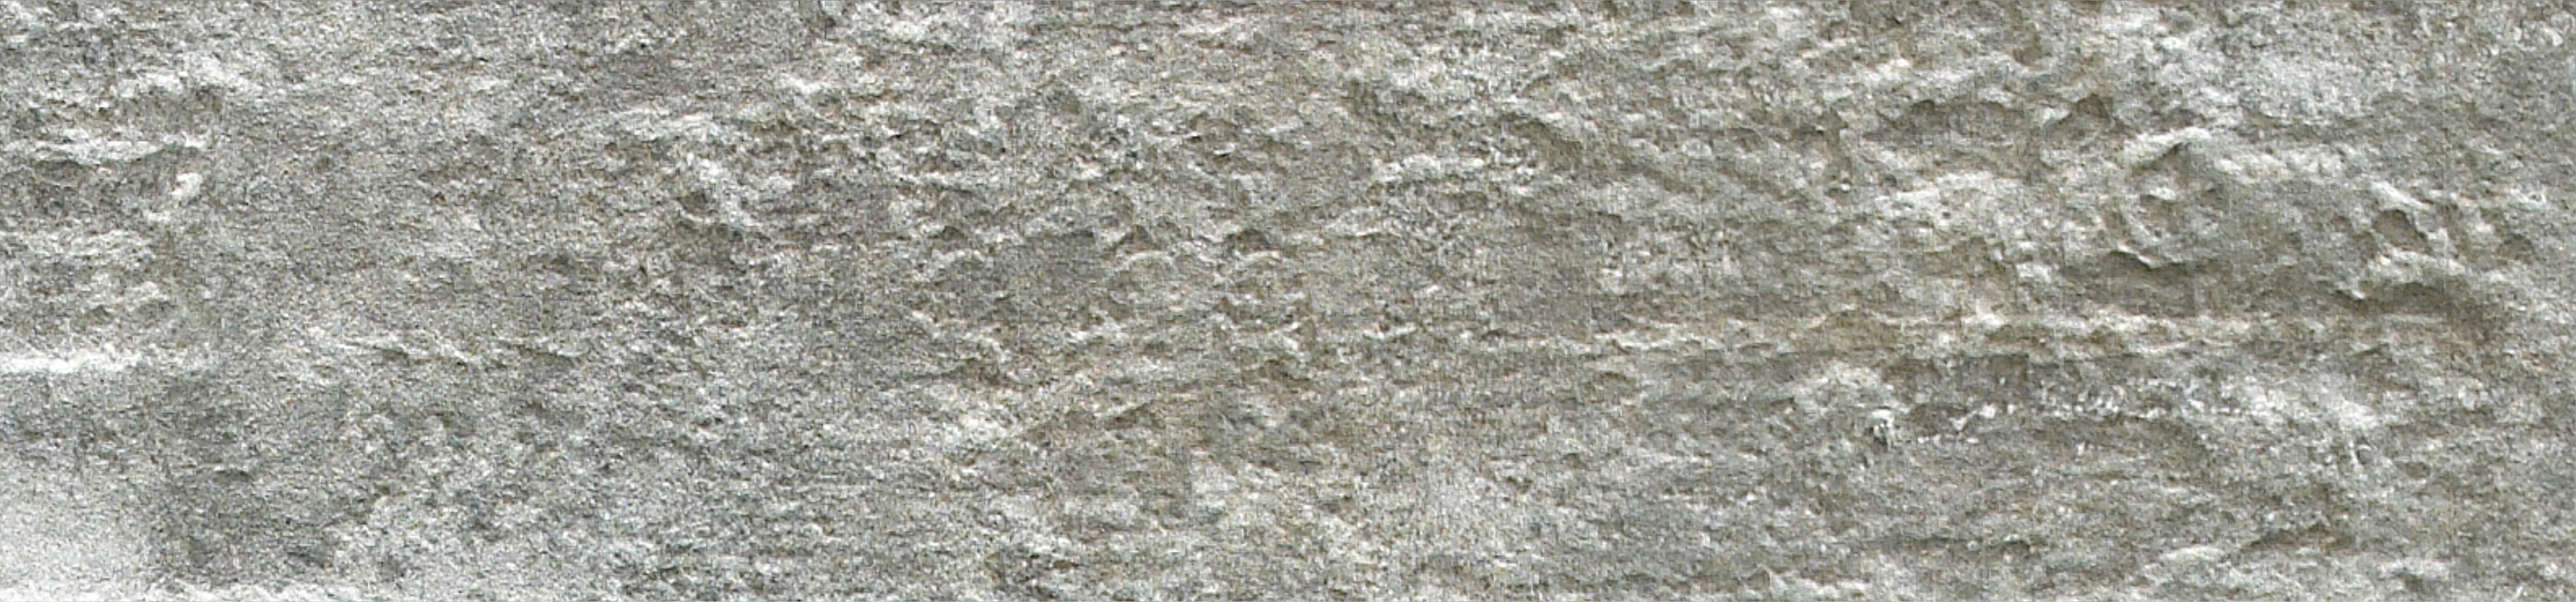 INTERLAKEN GREY BRICK 70X300 Image